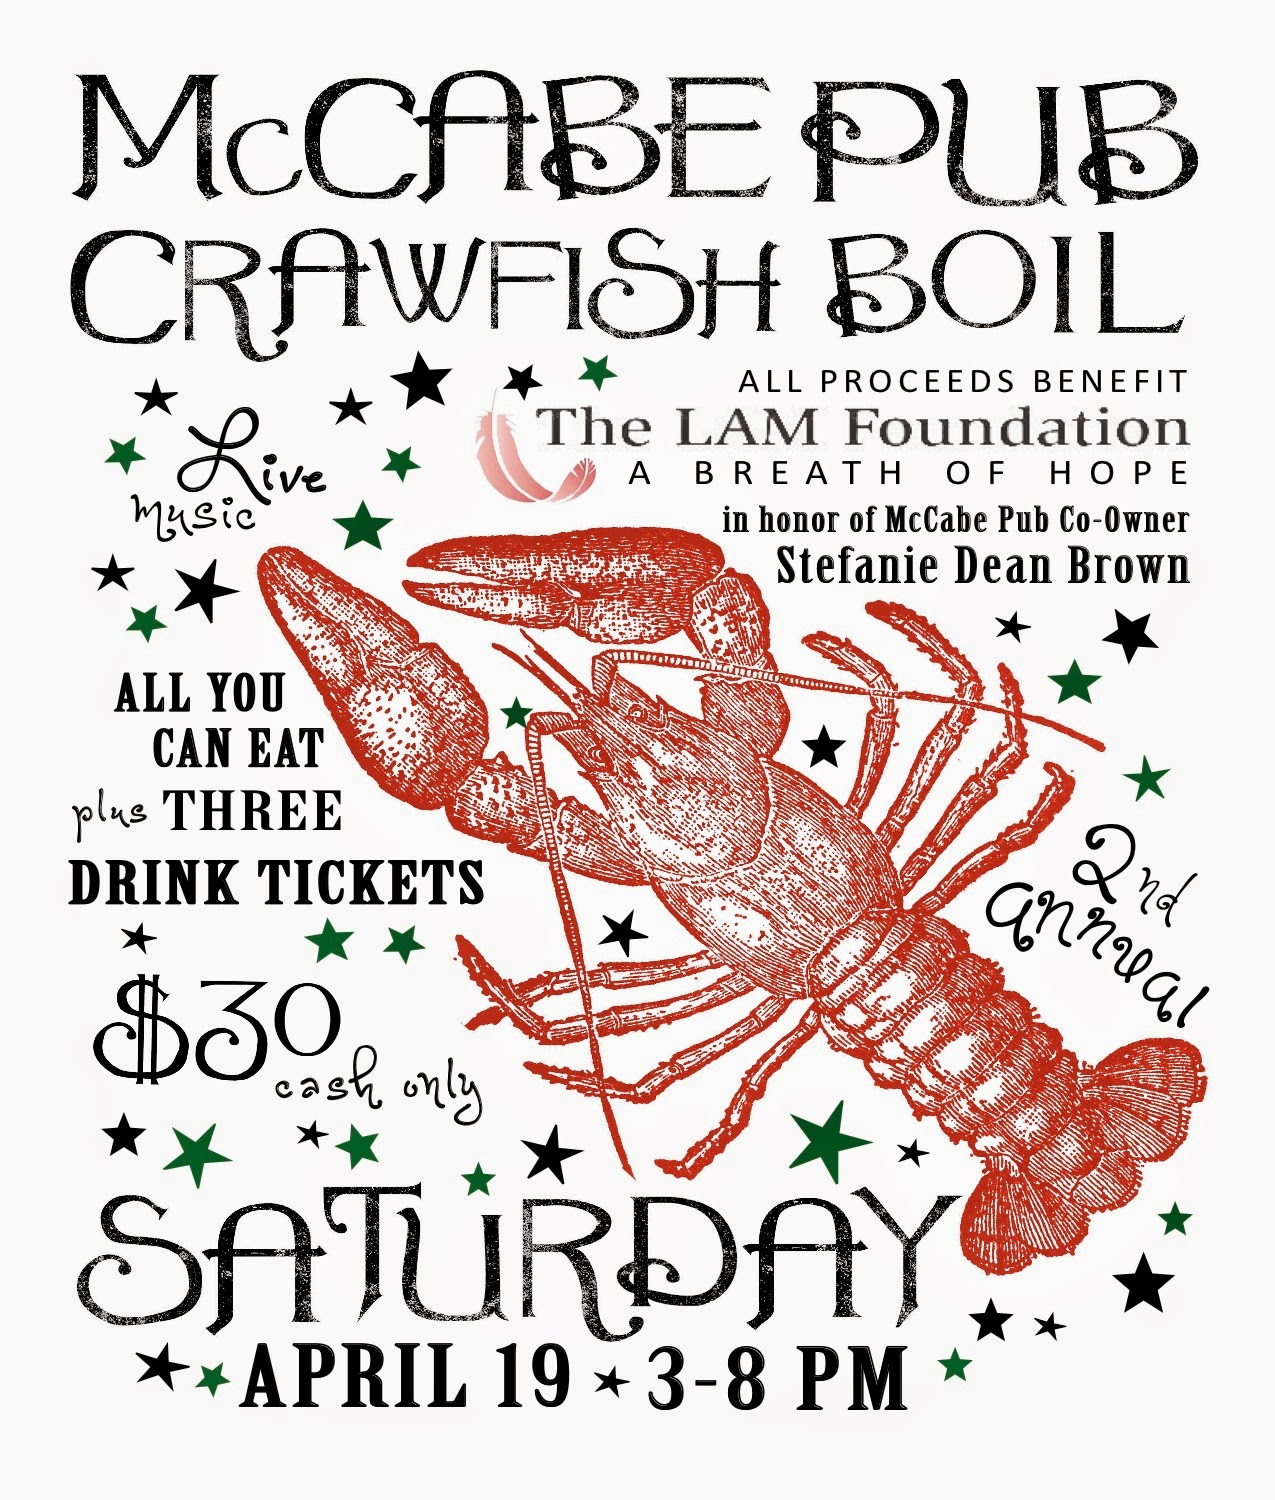 McCabe Pub Crawfish Boil